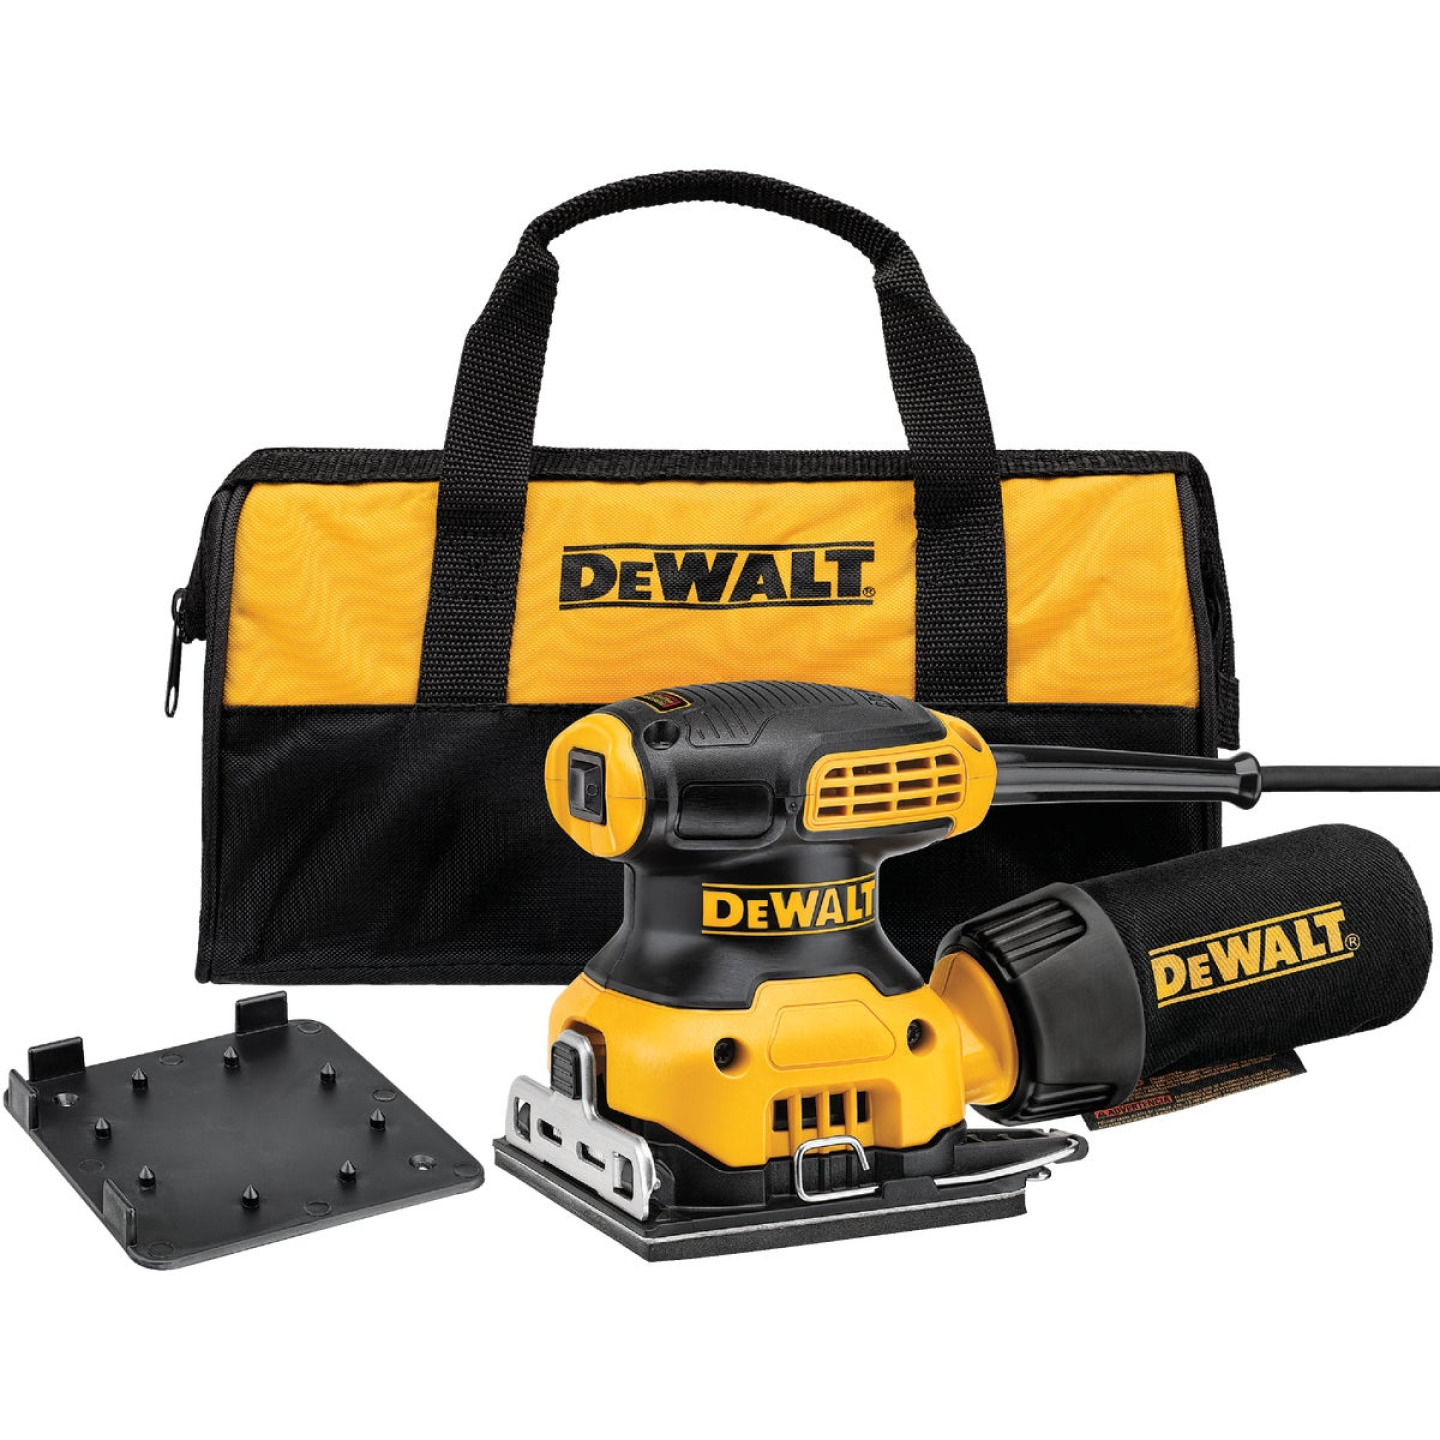 DeWalt 1/4 Sheet 2.3A Finish Sander Image 1